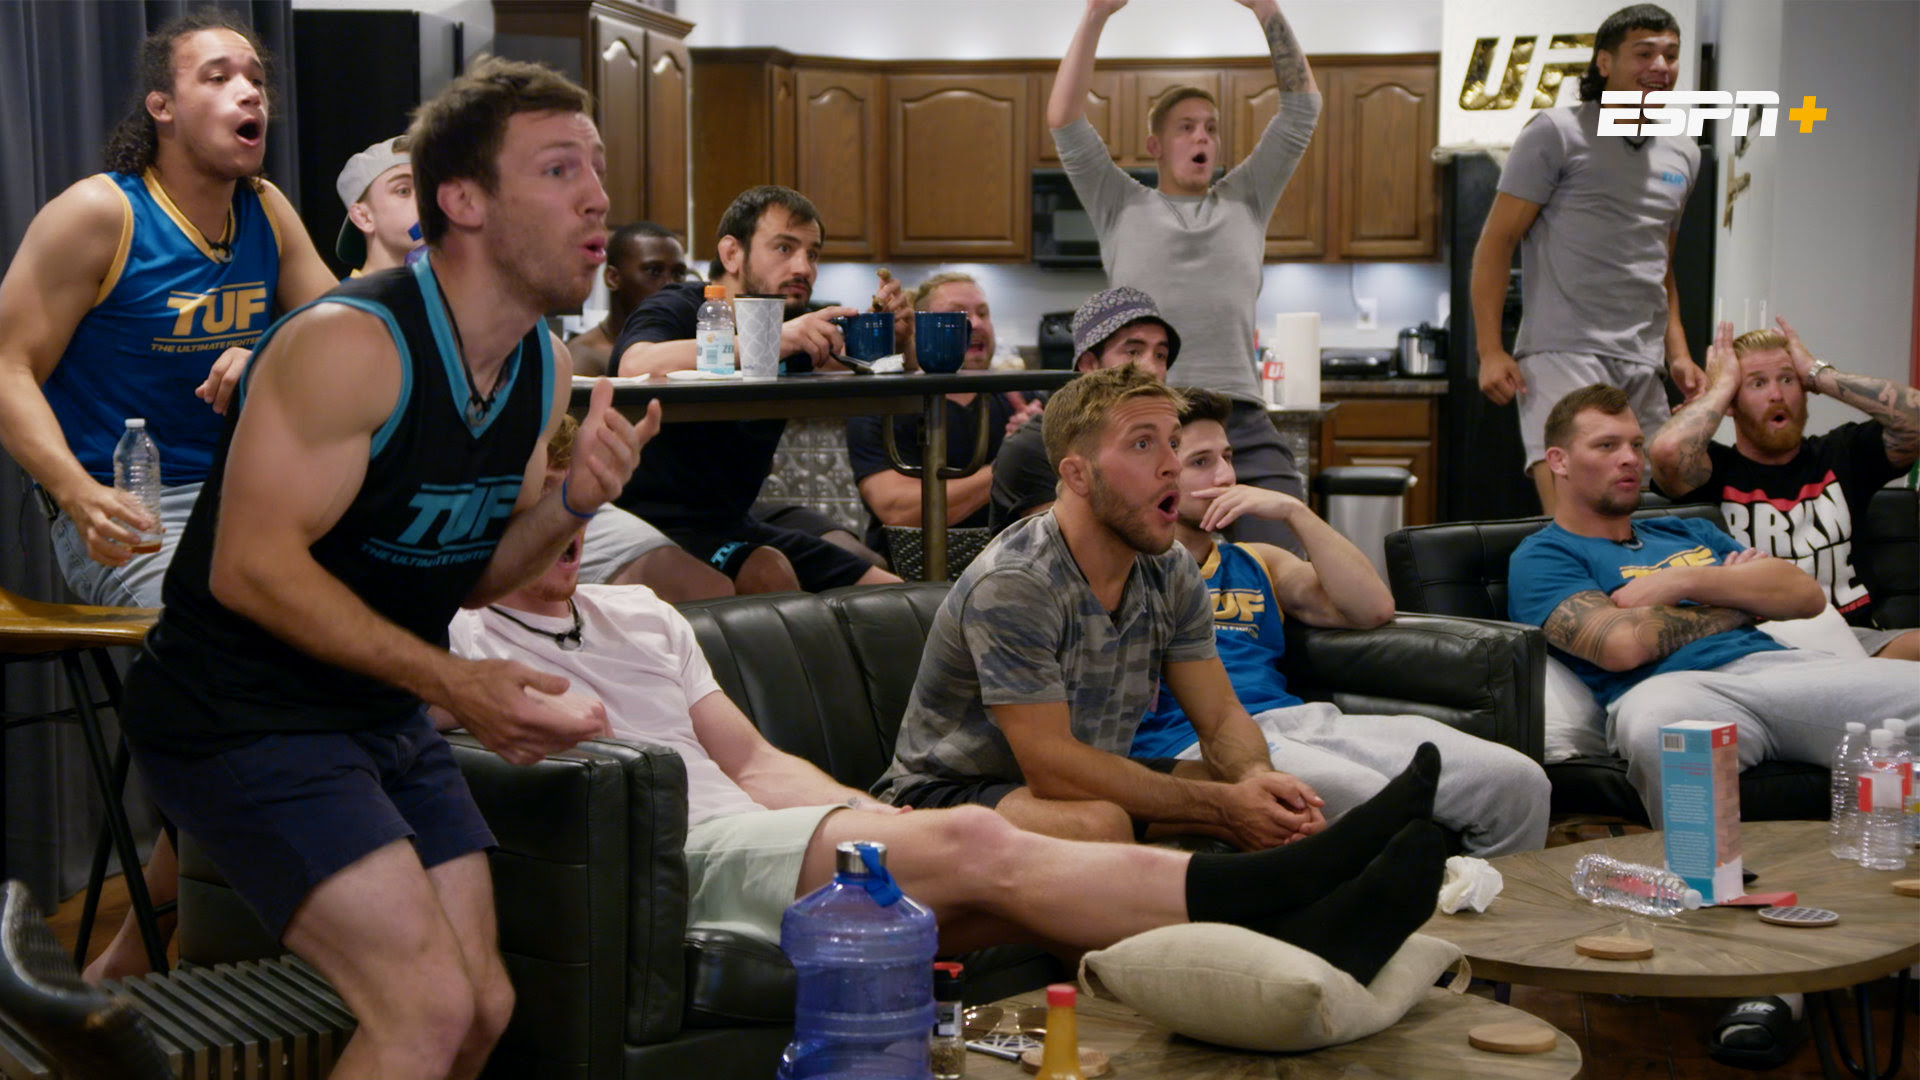 the ultimate fighter 29 watching ufc 261